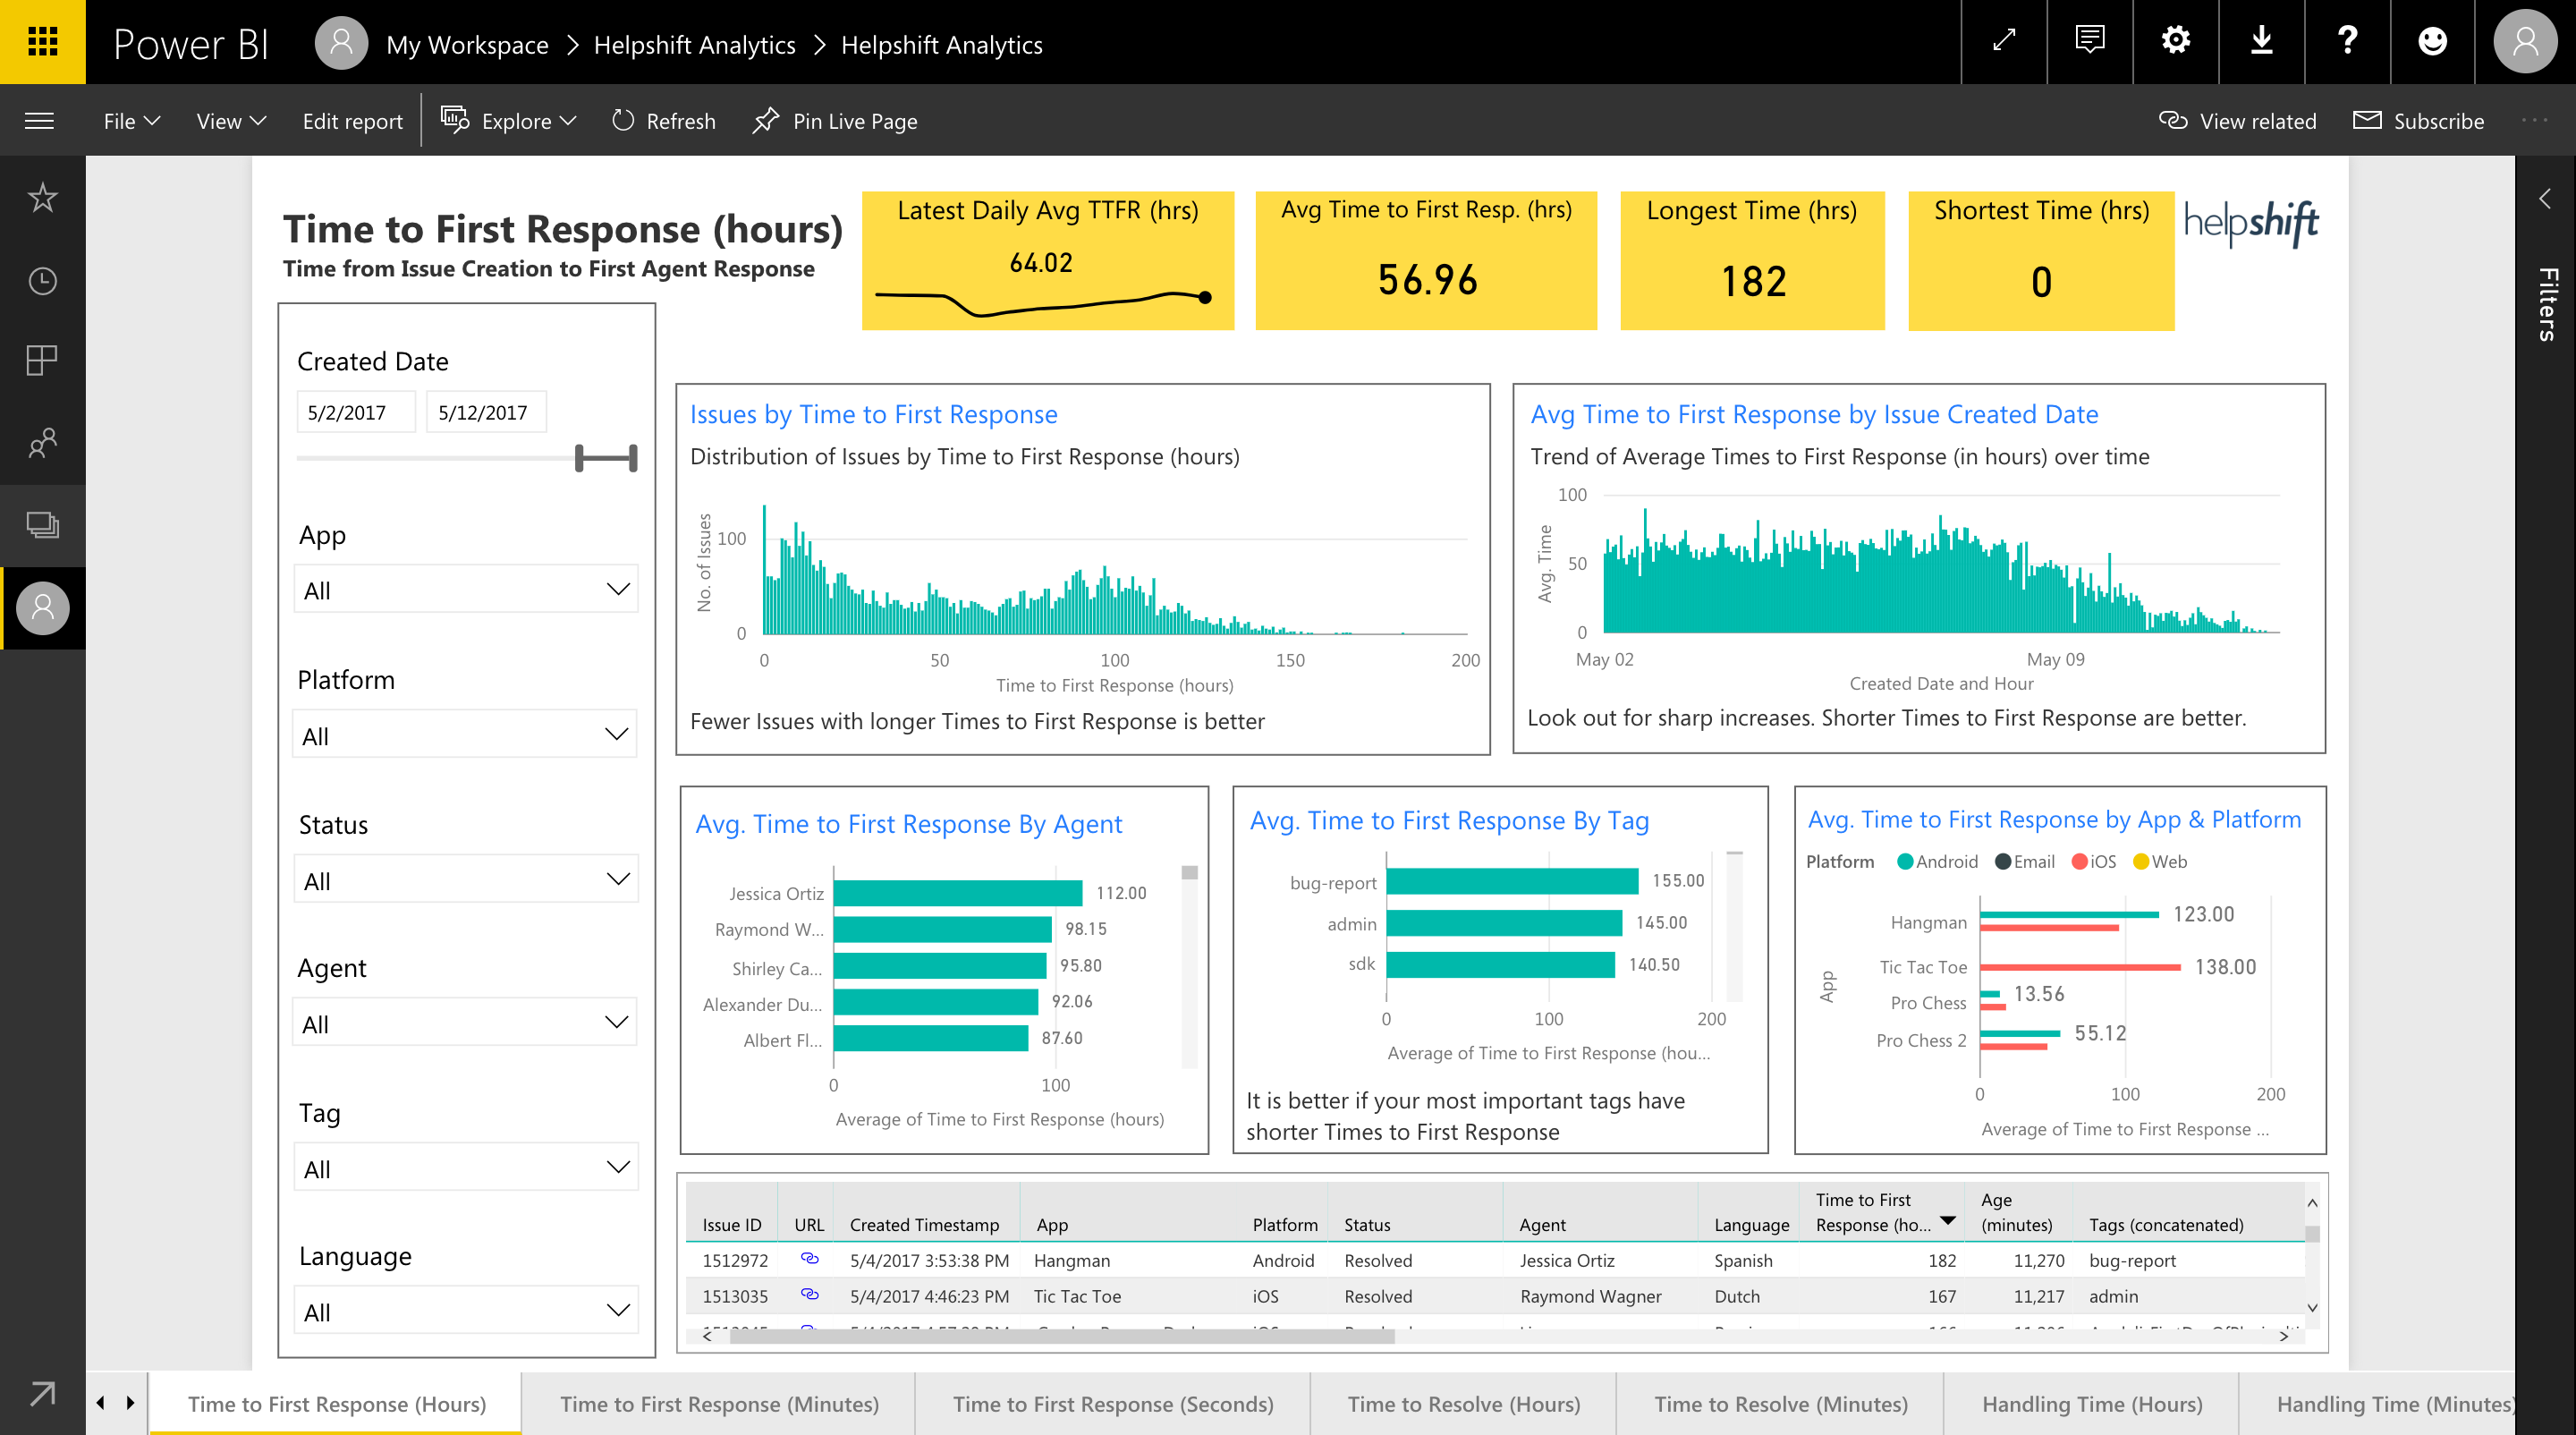 Guide: Power BI Reports Overview - Helpshift Knowledge Base